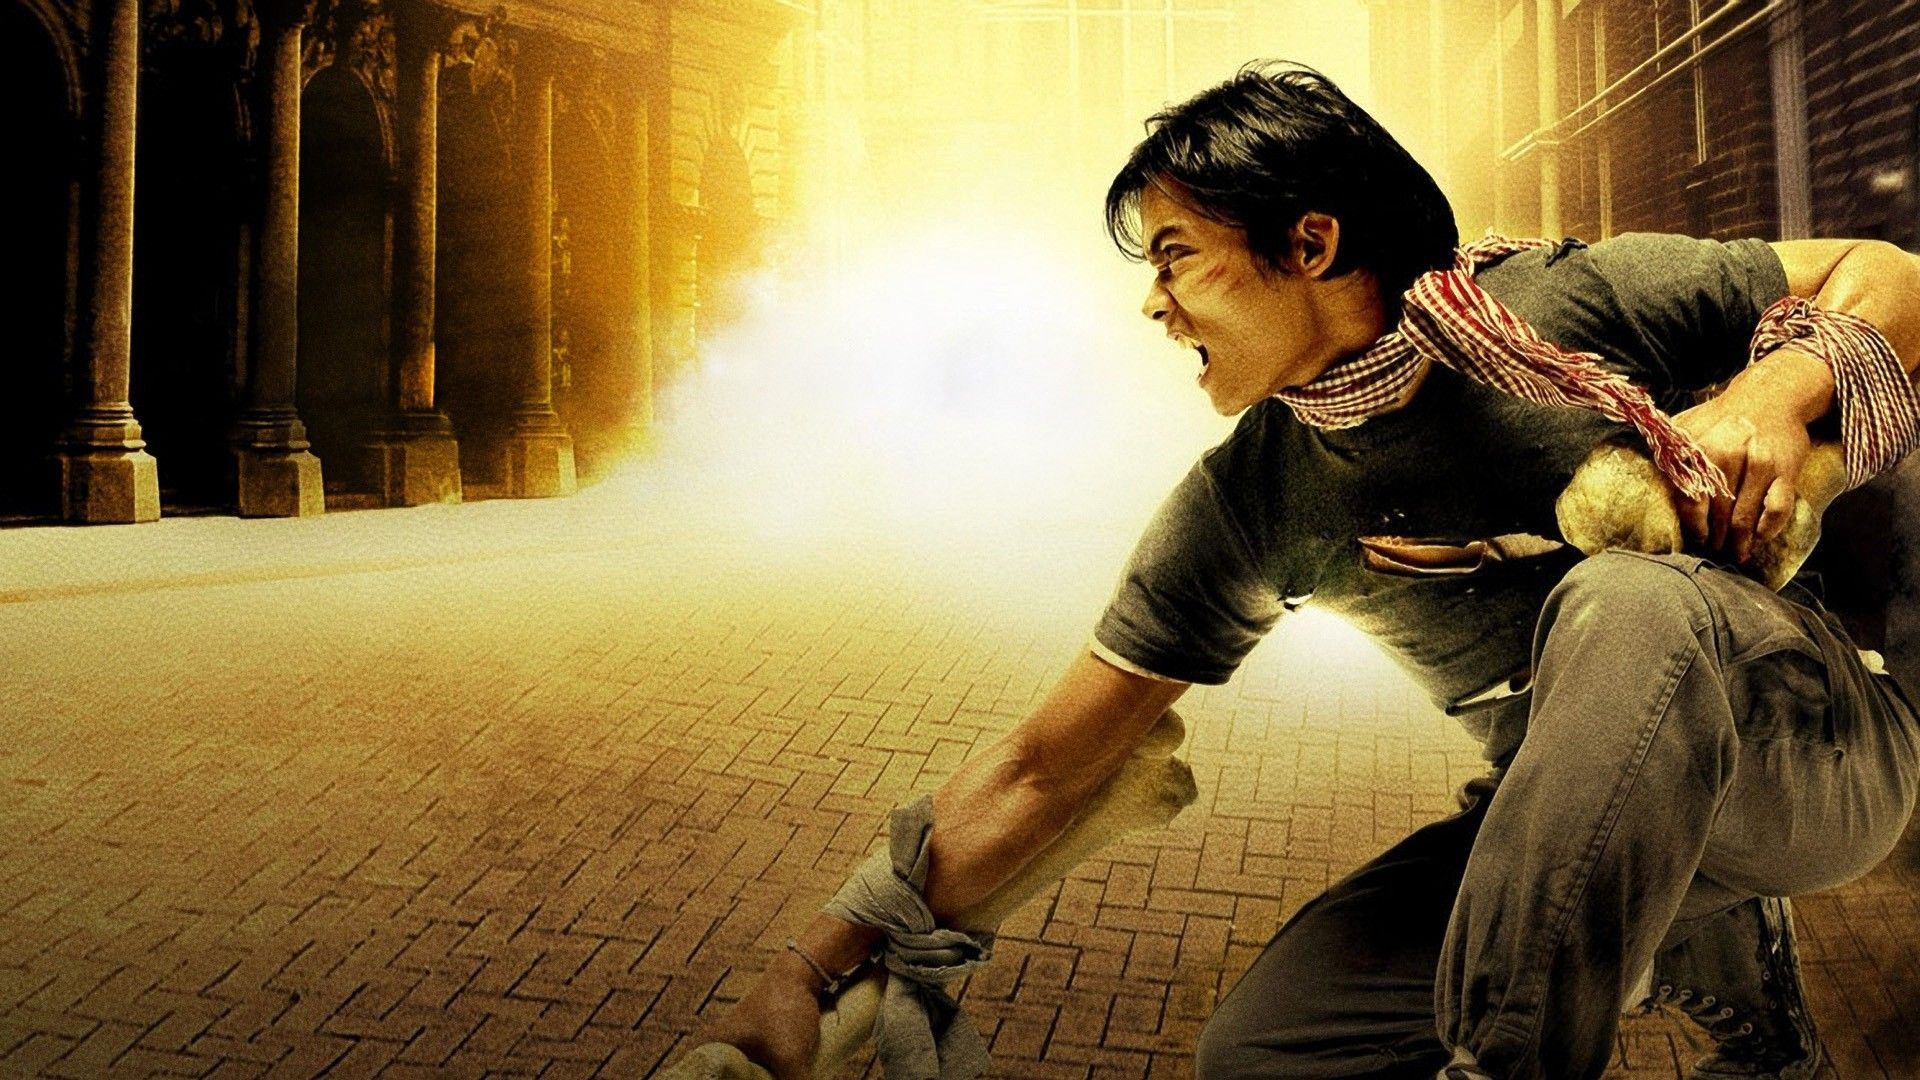 Pin by Megan Guerrero on Tony Jaa Tony jaa, Movies